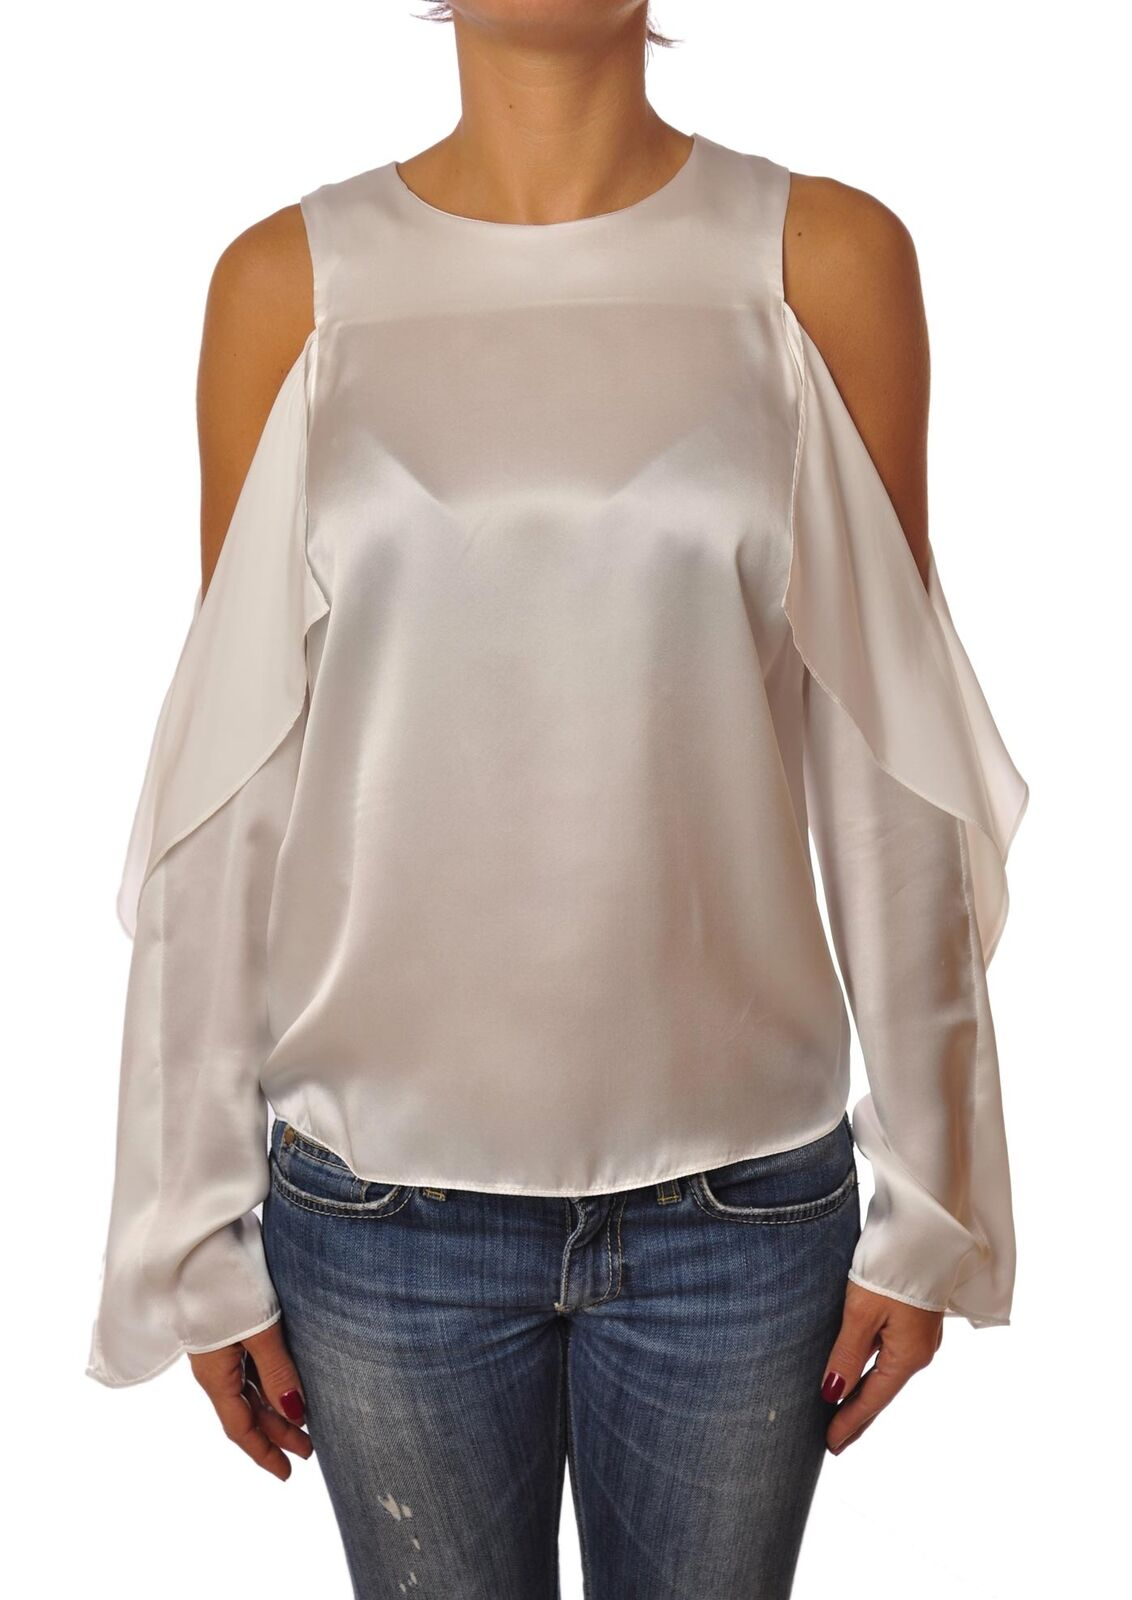 Pinko - Shirts-Blouses - Woman - White - 4296328M184015